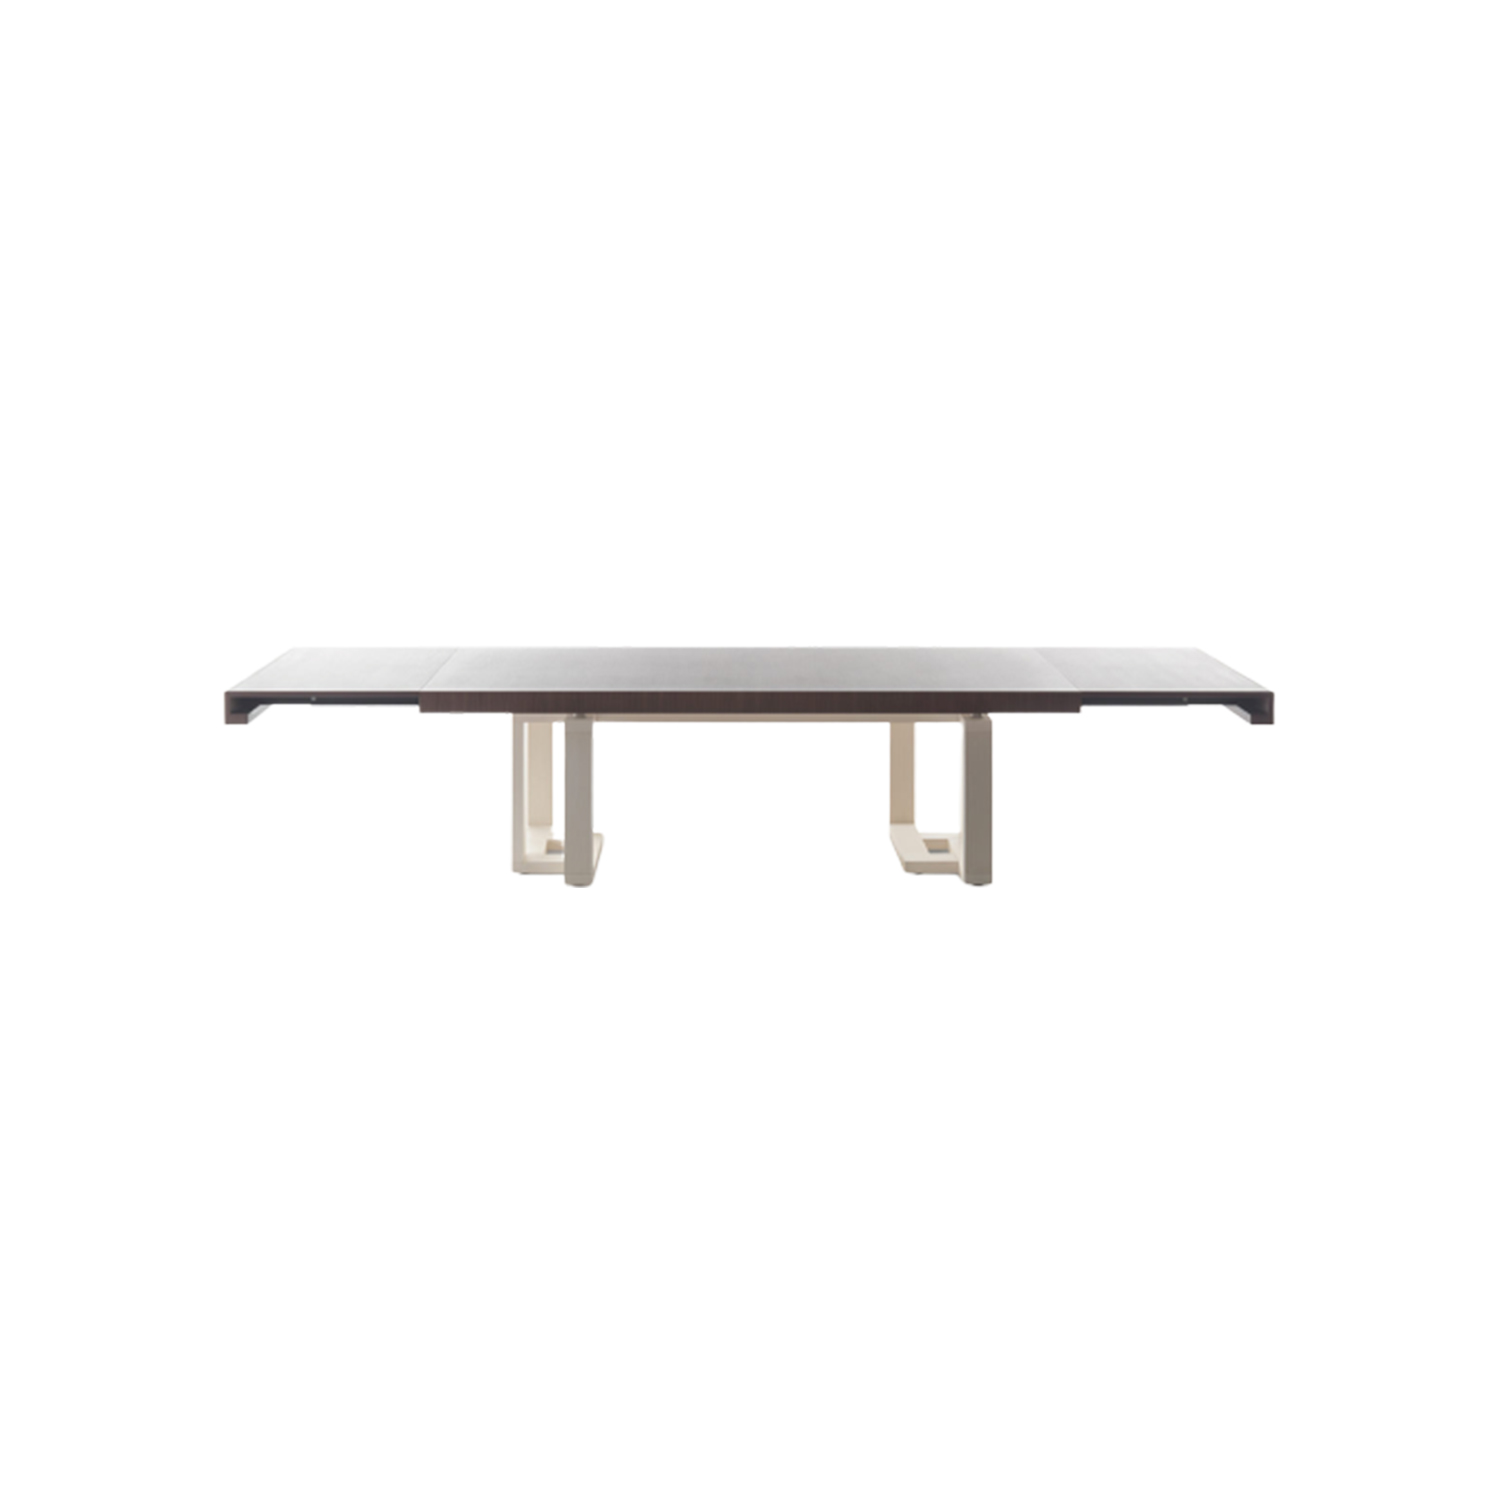 Fraseggio Extendable Table - Rectangular extensible table with aluminum rails and leaves magnetic alignment. Linear, orthogonal, extremely simple in form and mechanism, it effectively modulates itself and the surrounding space by extending on the fixed base. The two-tone increases aspects of lightness and its dialogue with accuracy and precision in the space, almost as if following a poetic and musical matrix.  | Matter of Stuff